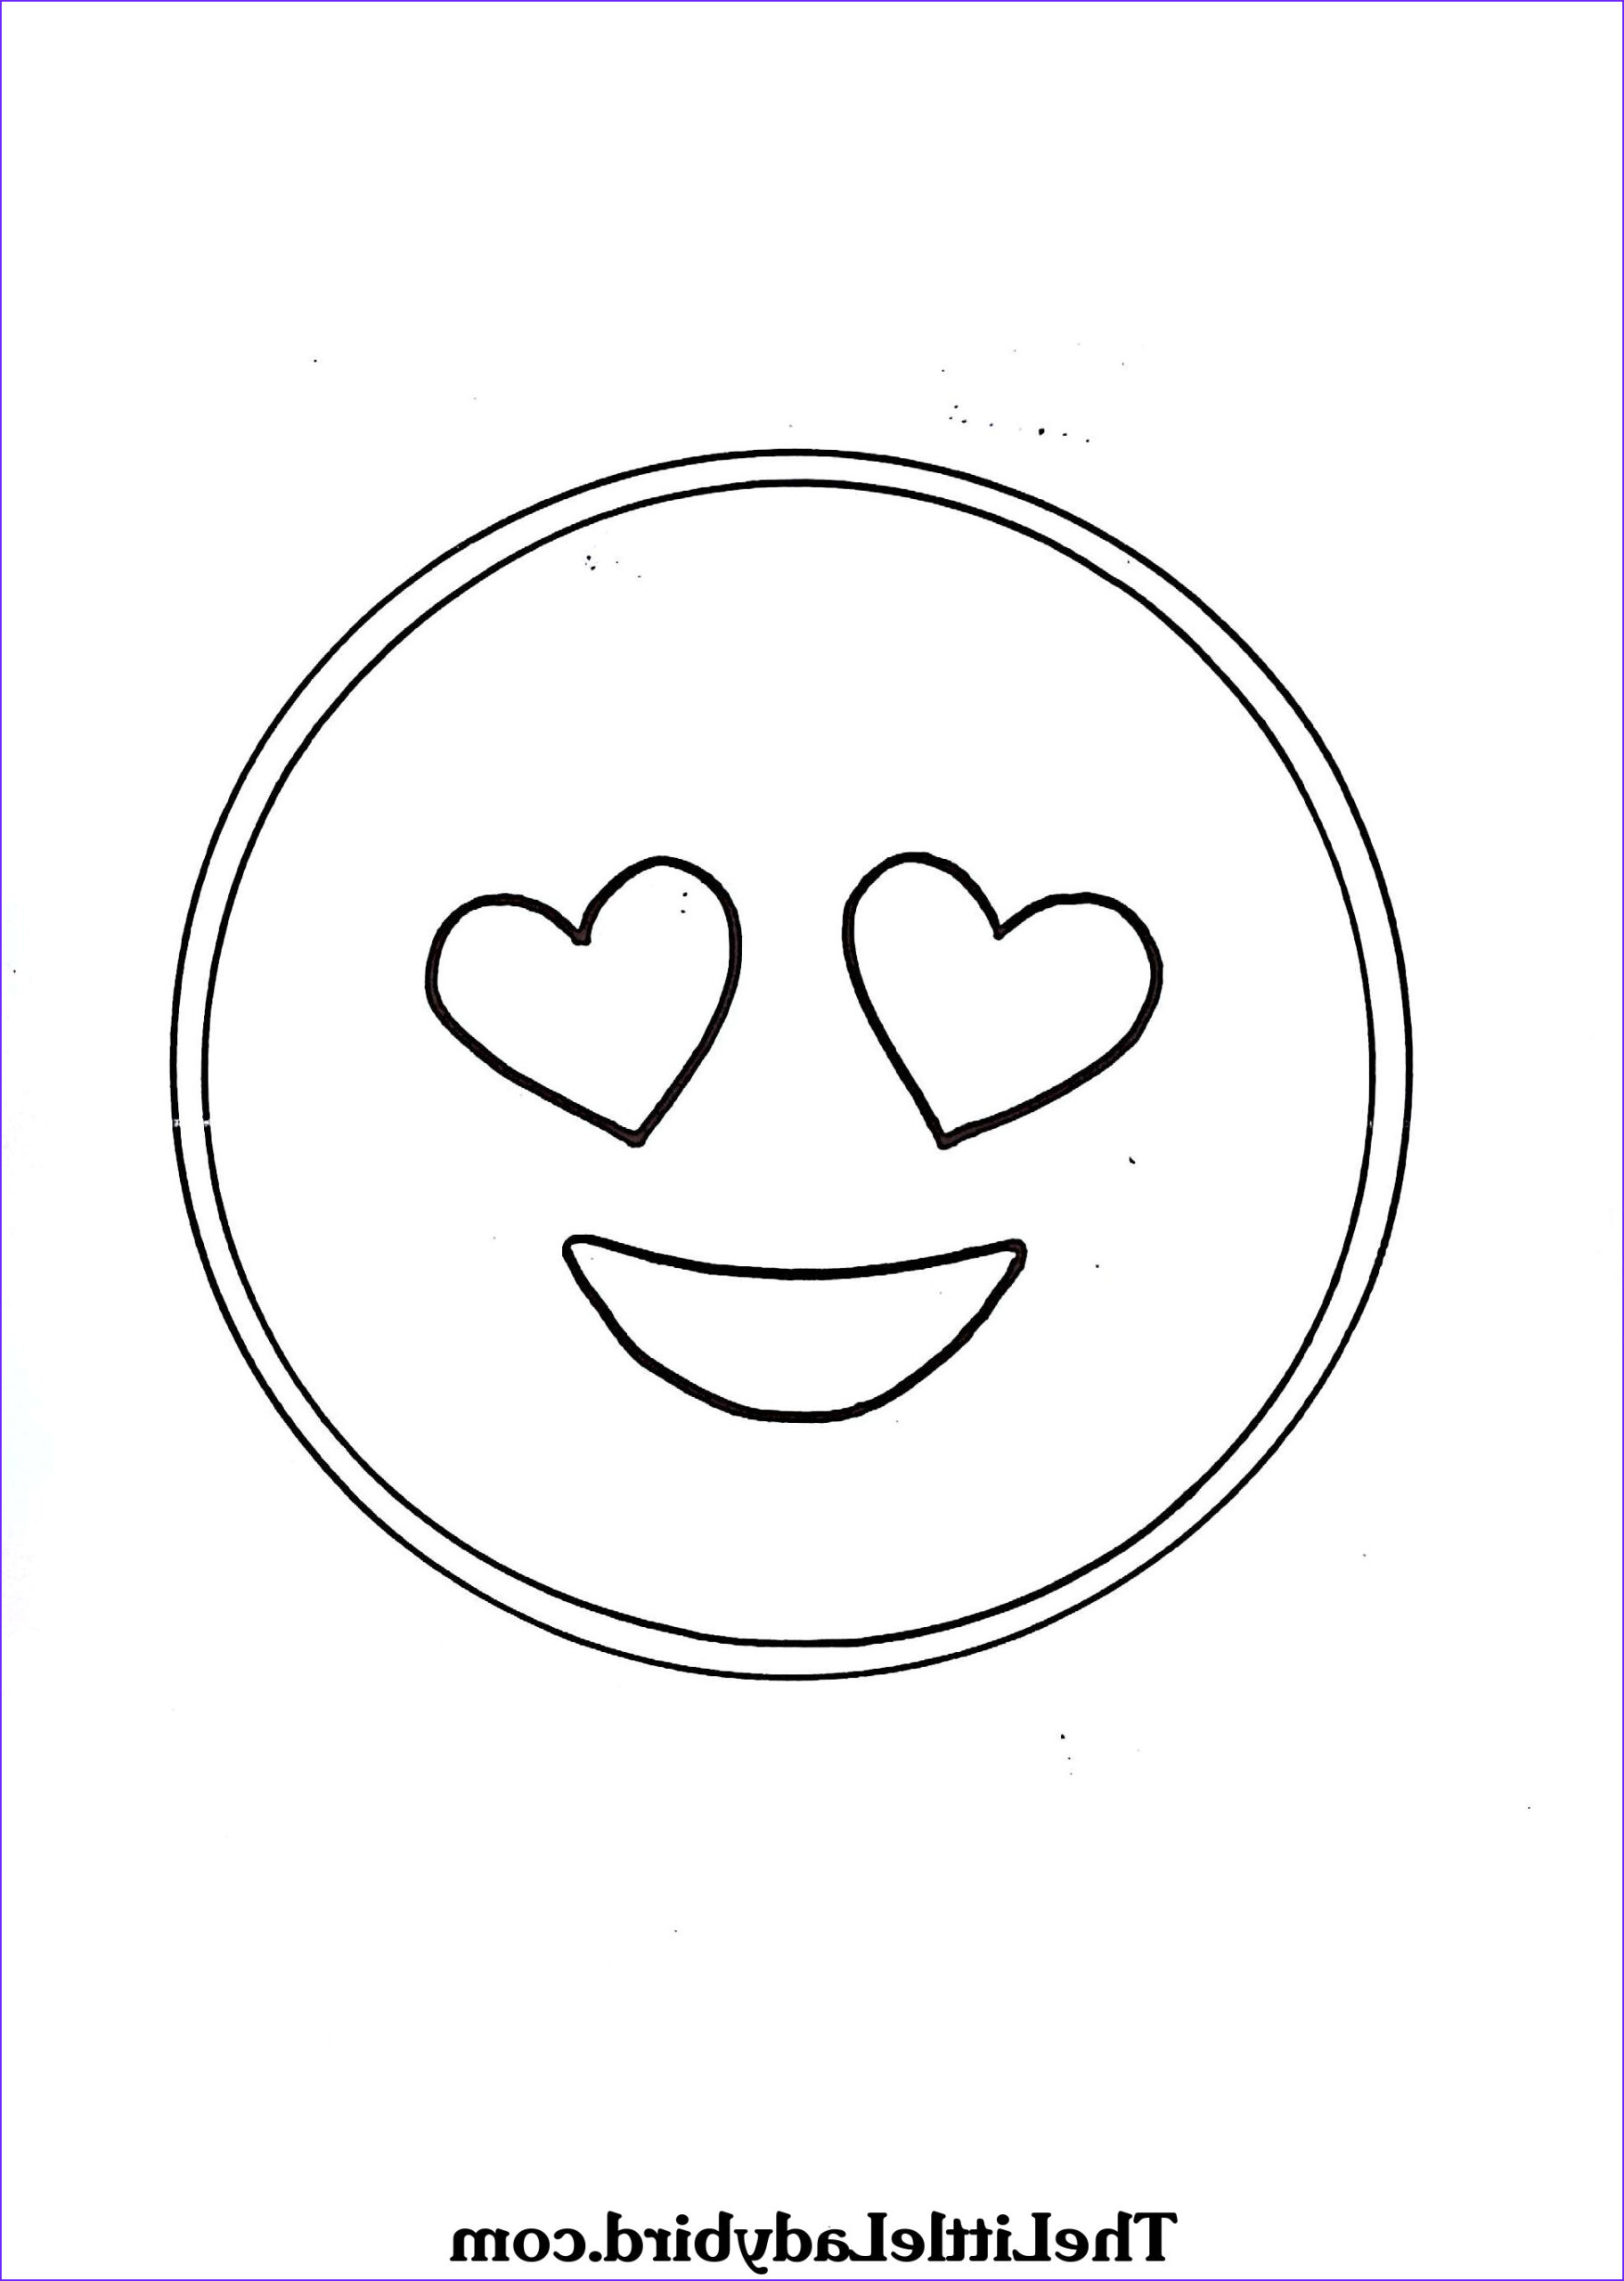 Emoji Coloring Page Free Printable Beautiful Photography Emoji Coloring Pages In Love